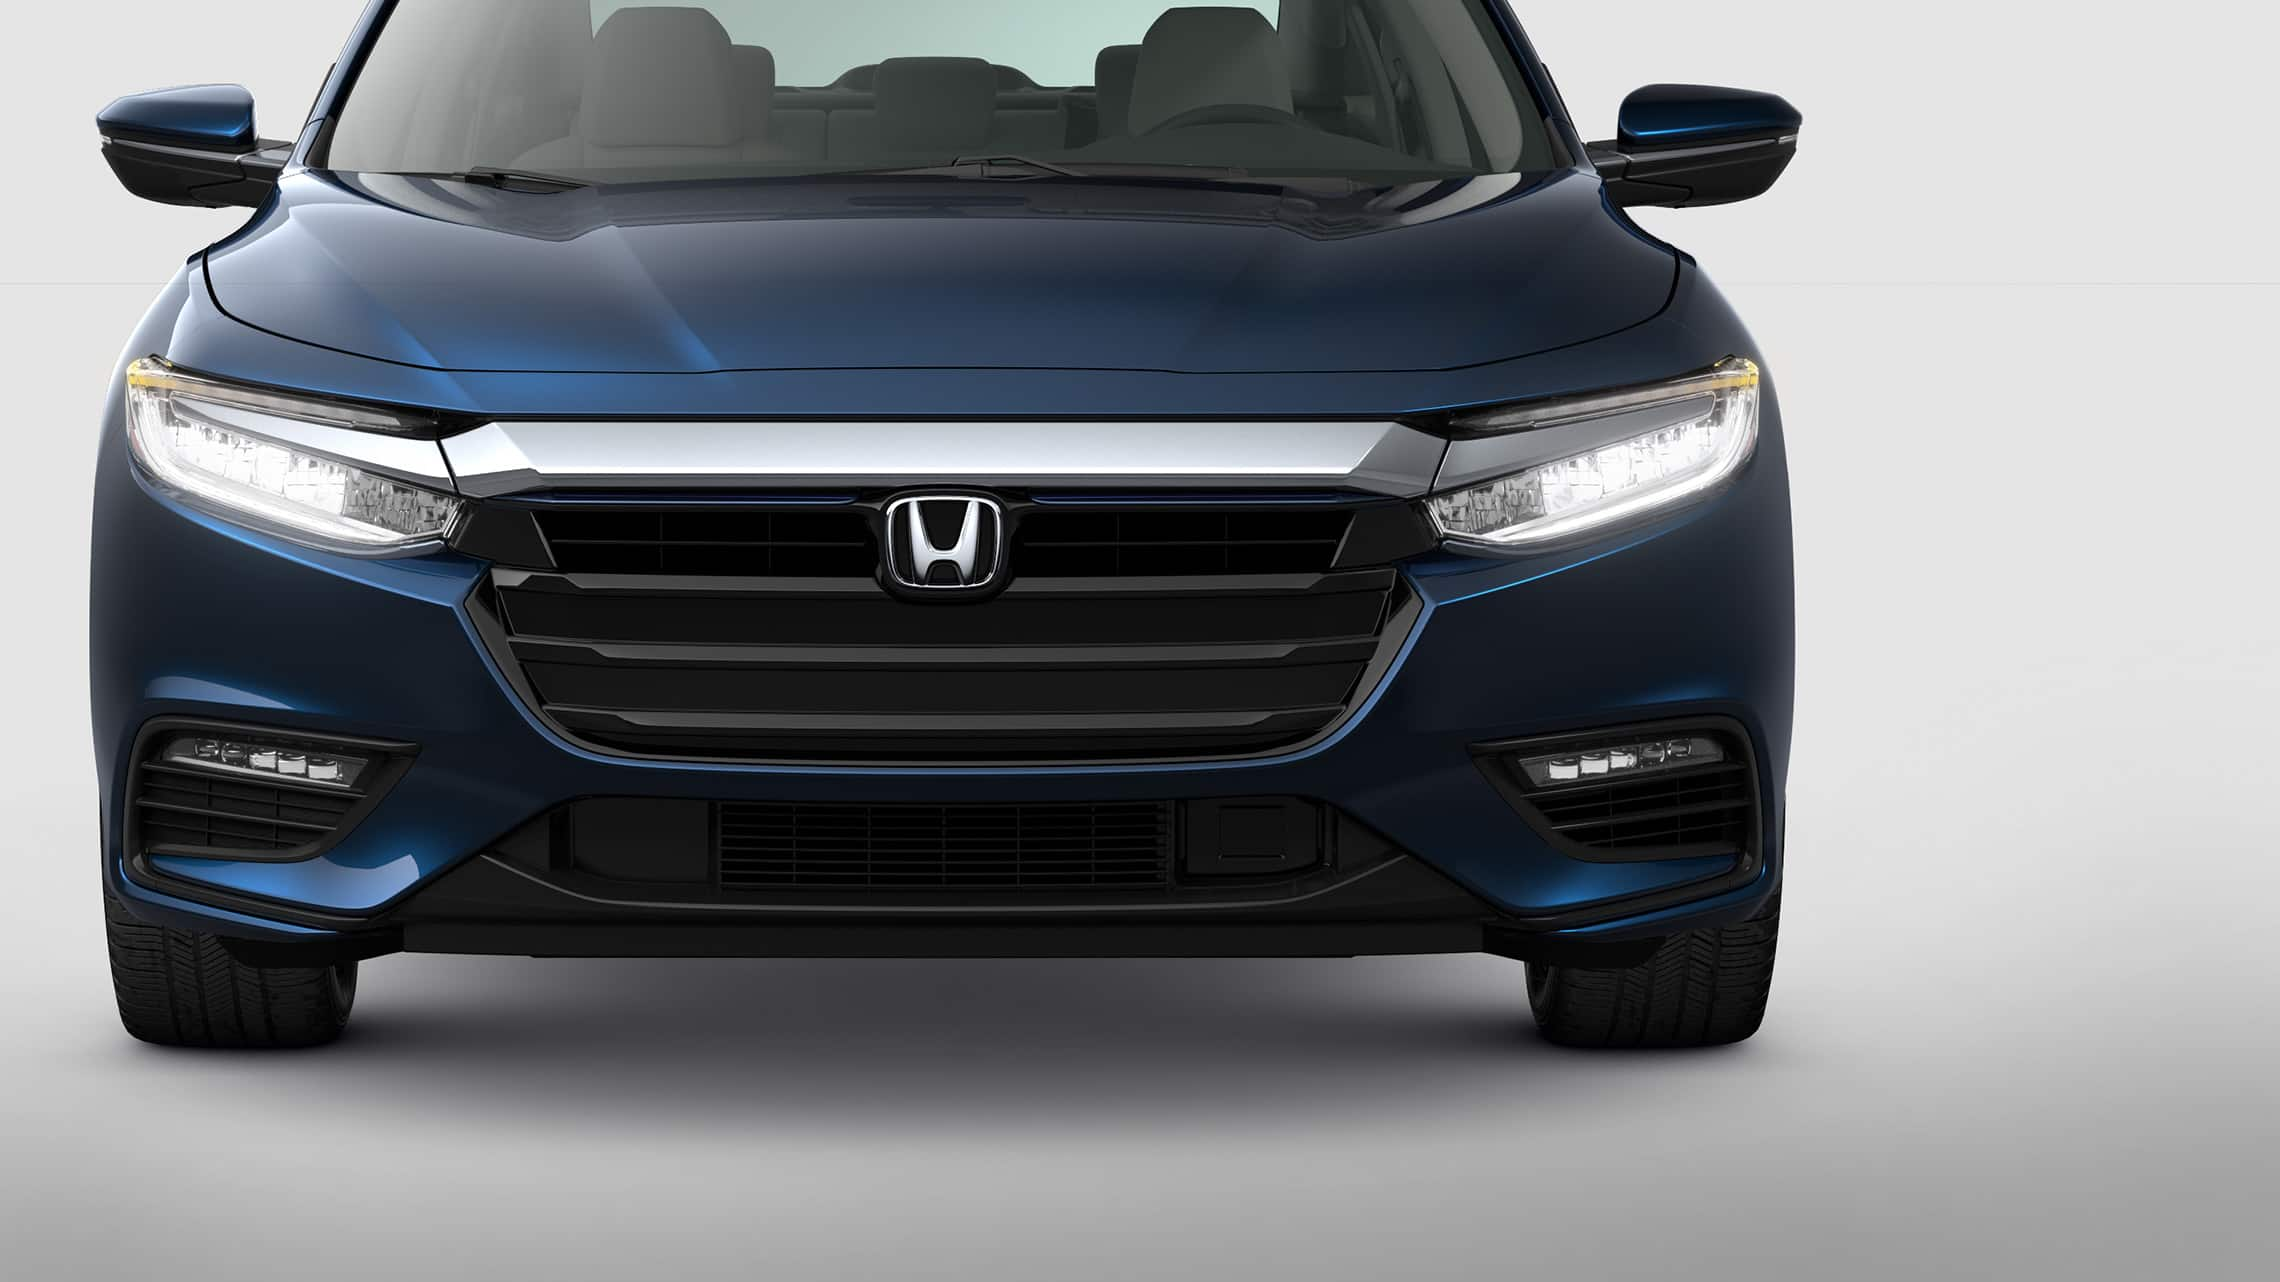 Front view of 2021 Honda Insight in Cosmic Blue Metallic.